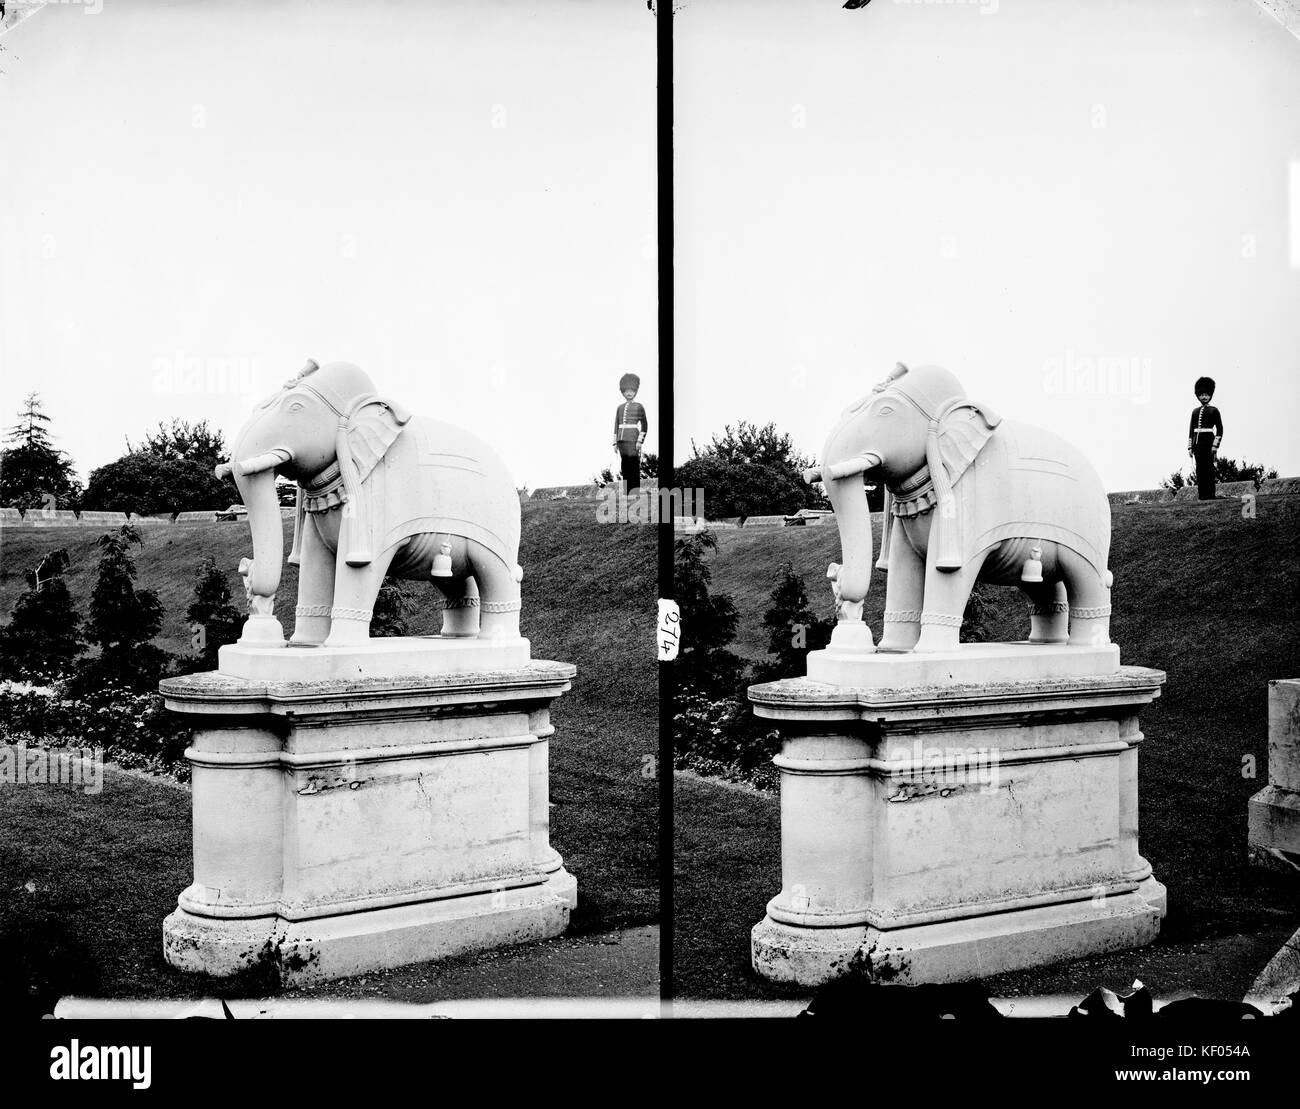 Windsor Castle, Berkshire. Stereoscopic view showing the Lucknow Elephant statue in the grounds of Windsor Castle - Stock Image